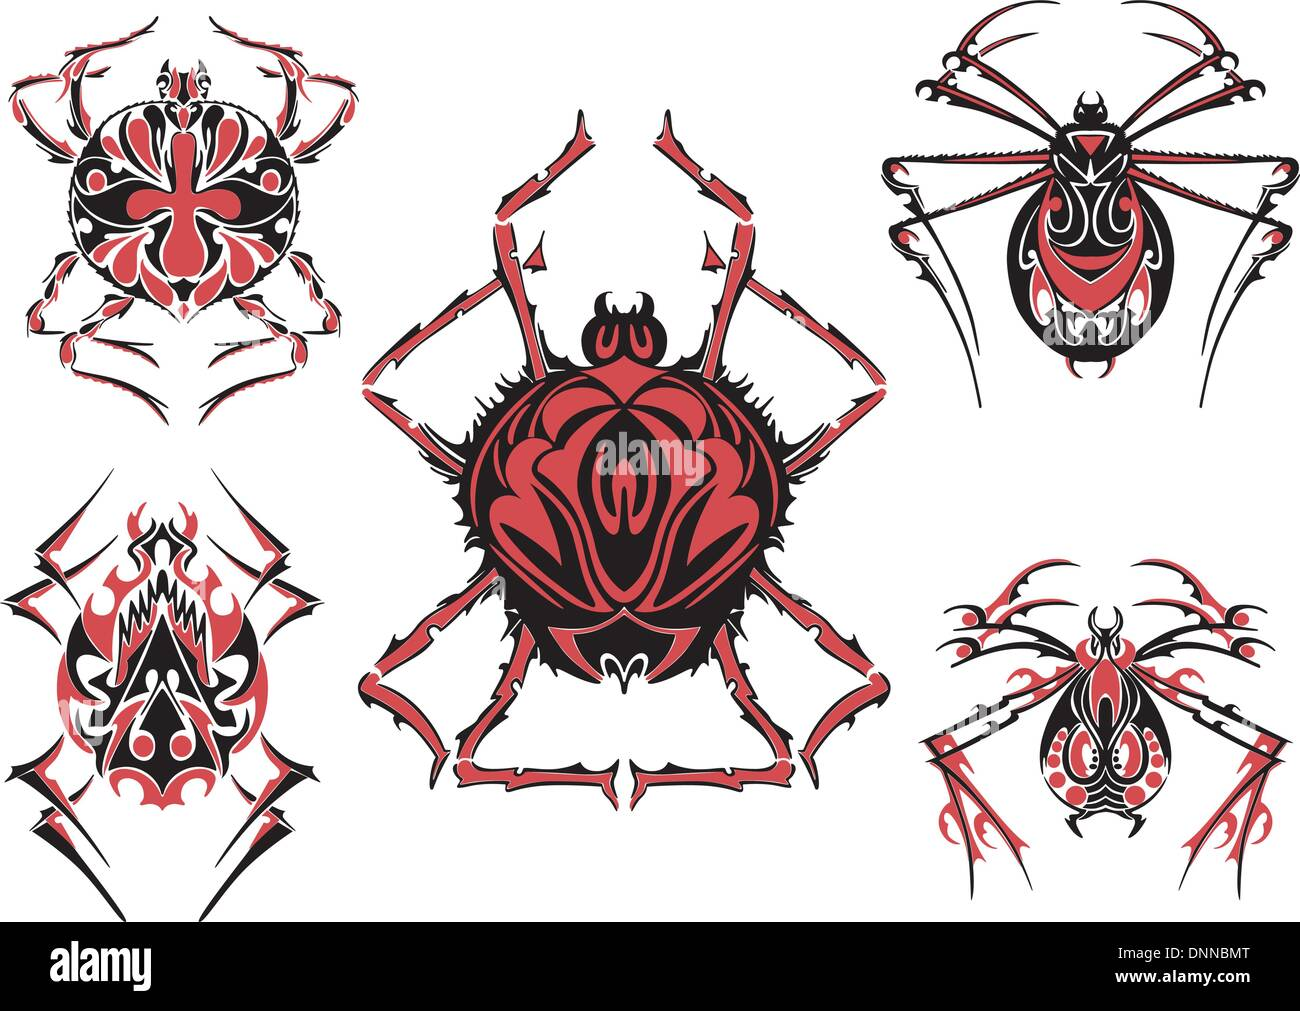 Black and red symmetric spider tattoos. Vector Illustration EPS8 - Stock Image